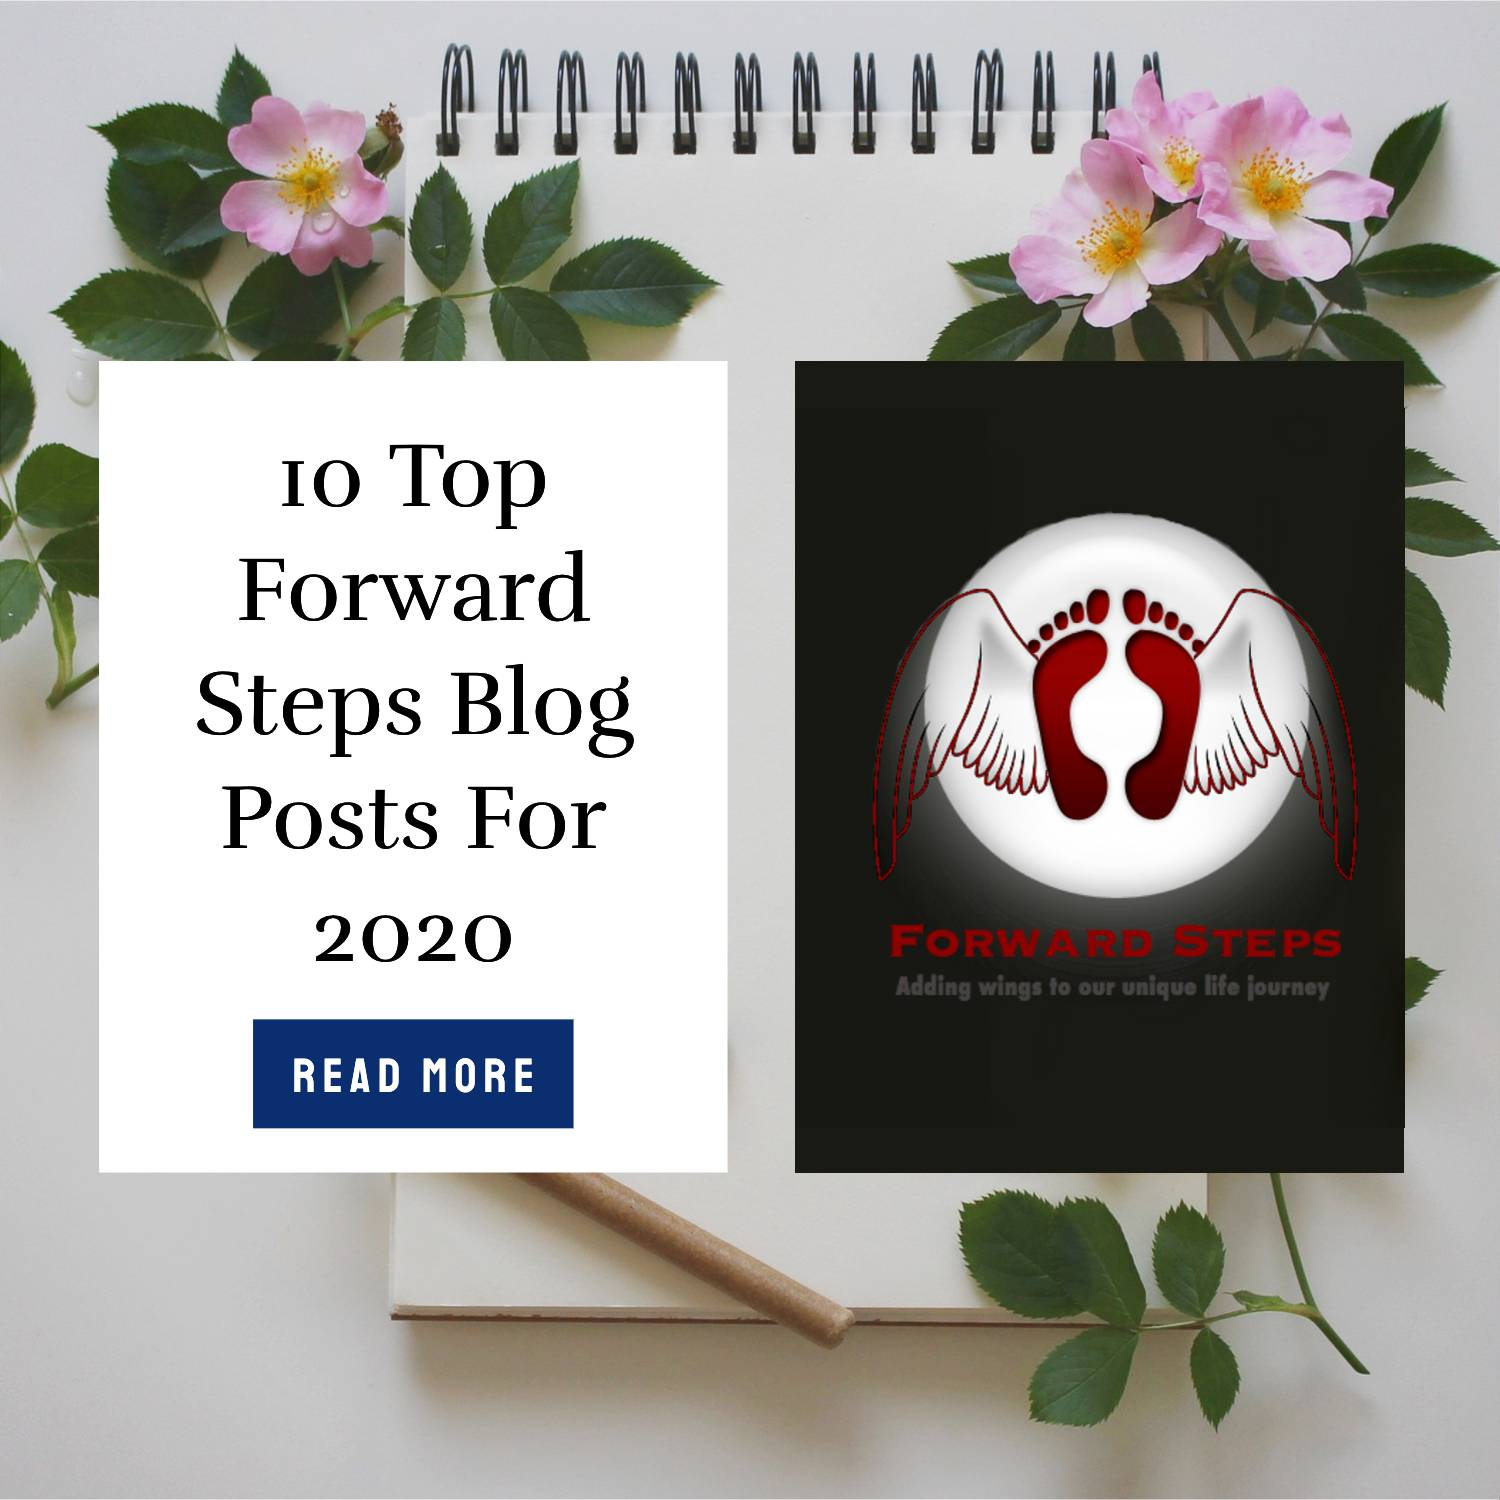 10 Top Forward Steps Blog Posts For 2020